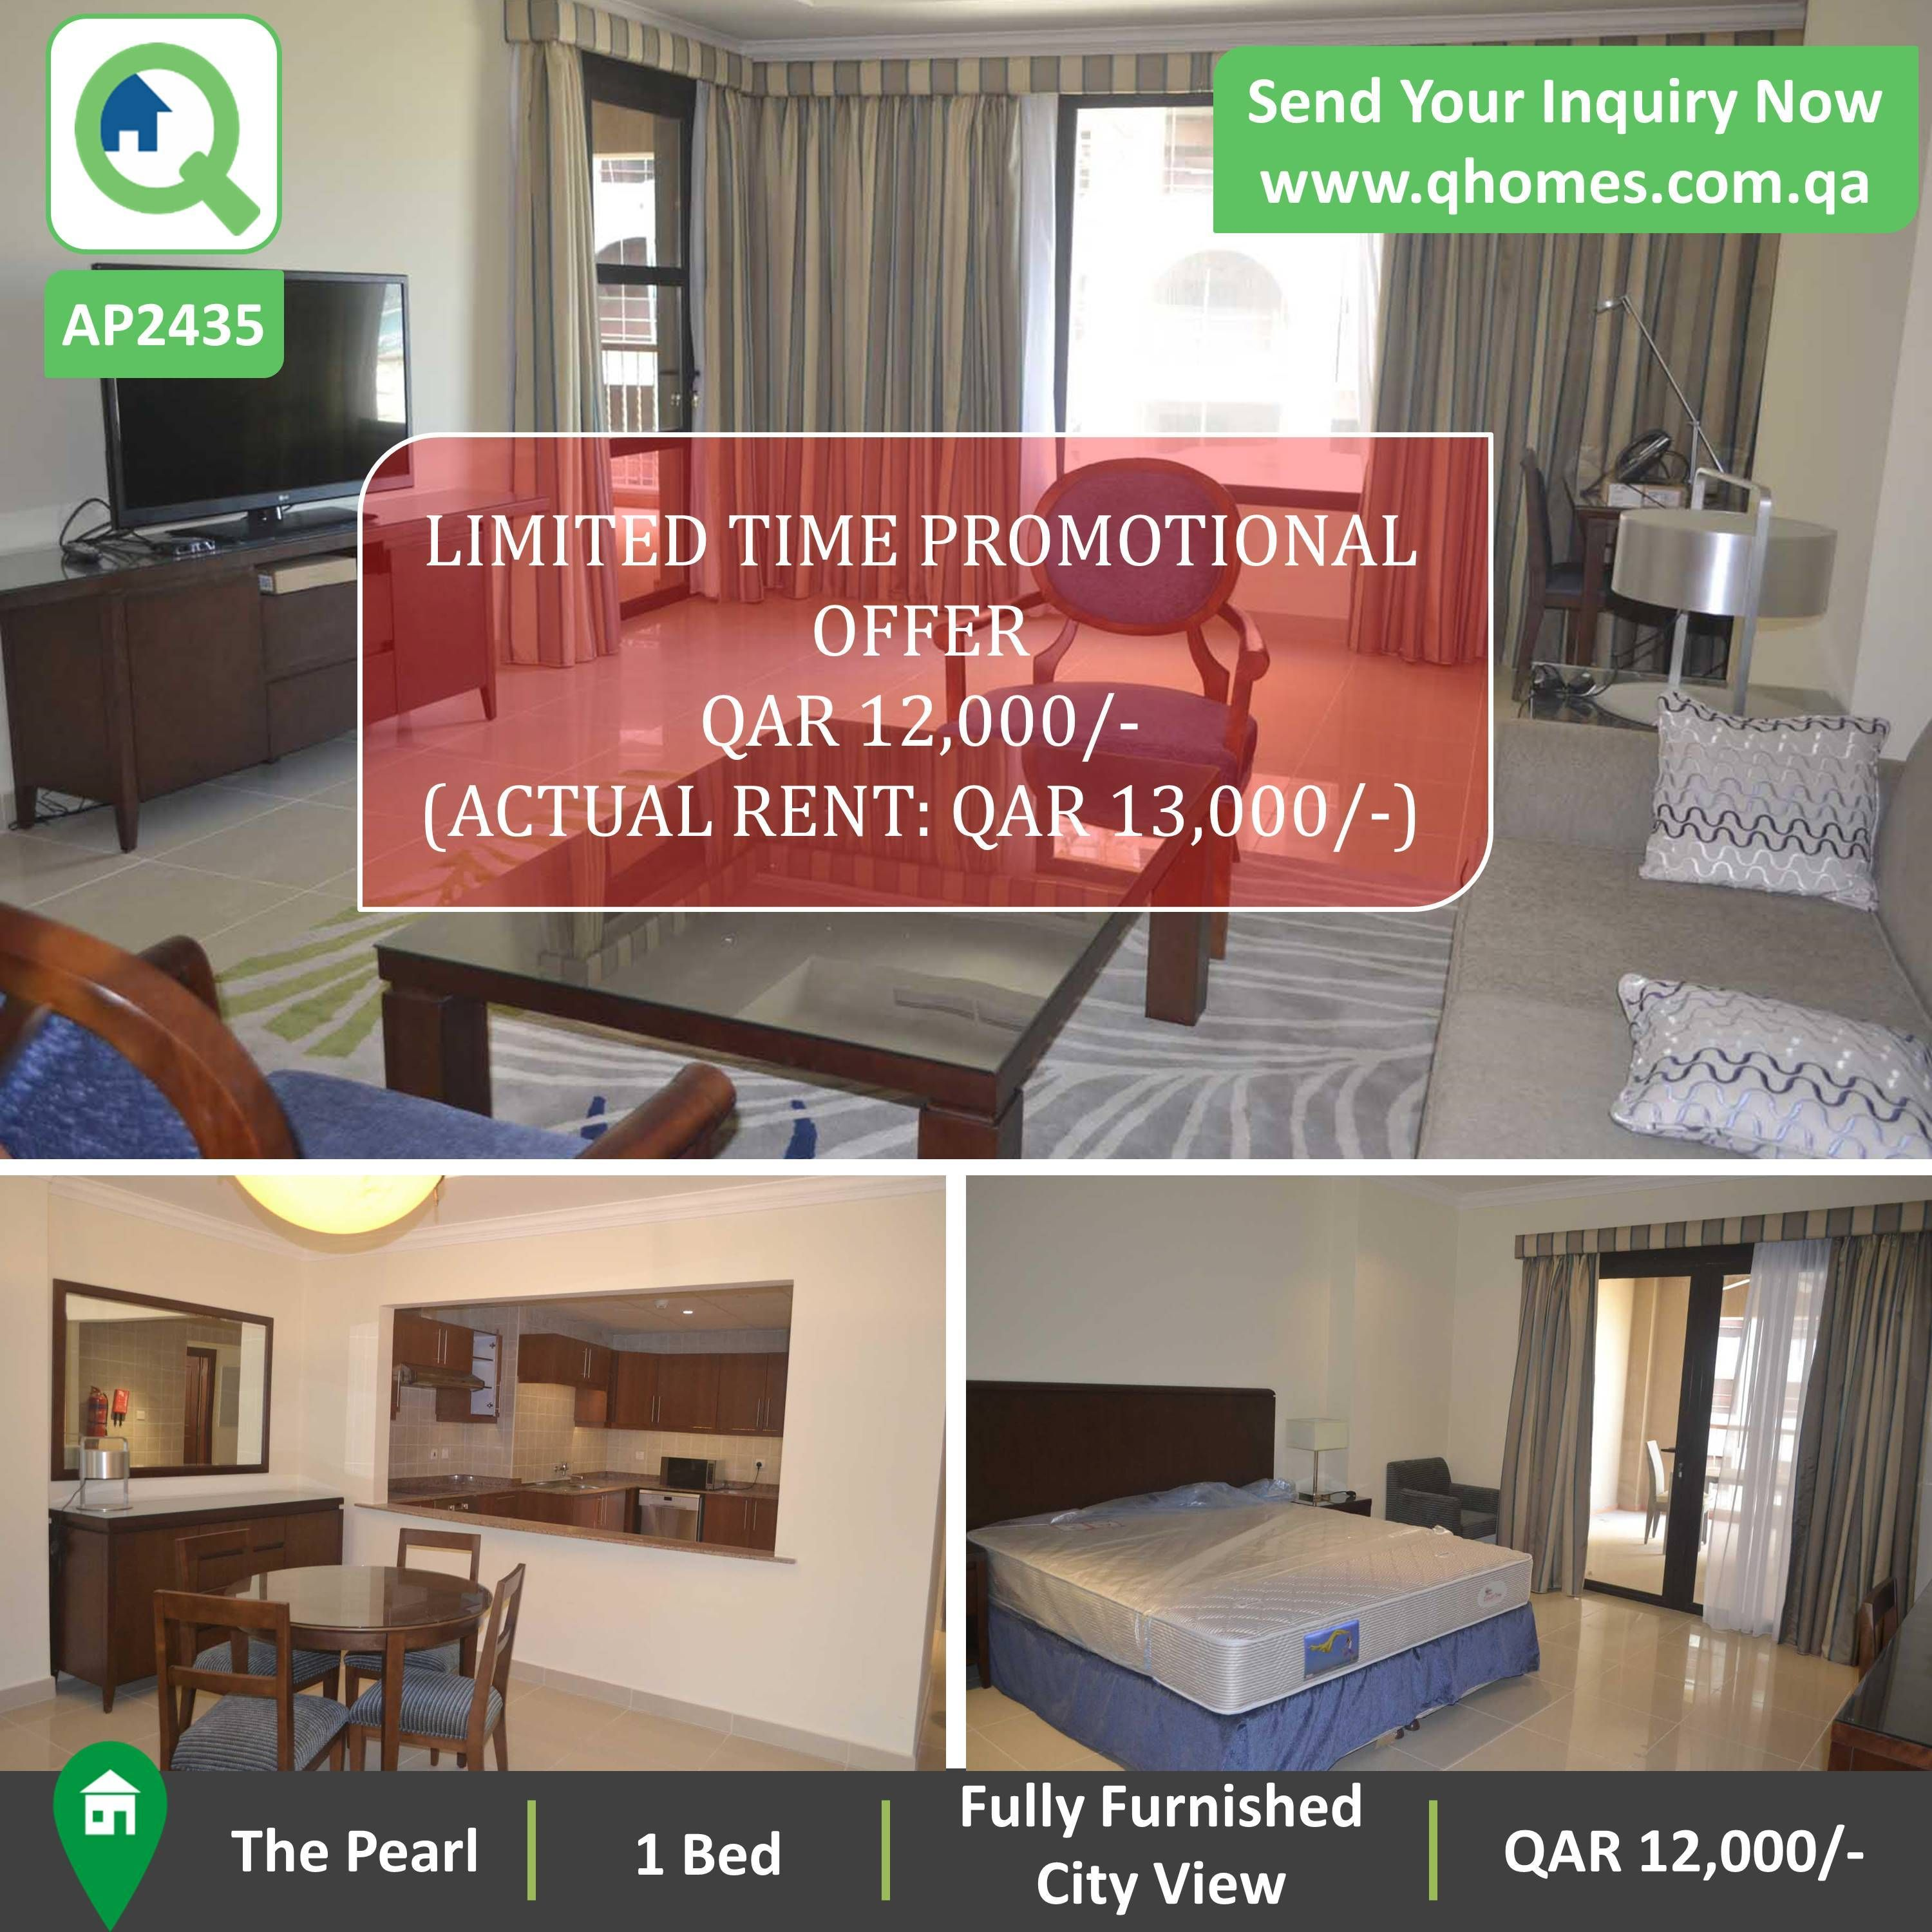 Apartment For Rent In Pearl Qatar: Fully Furnished 1